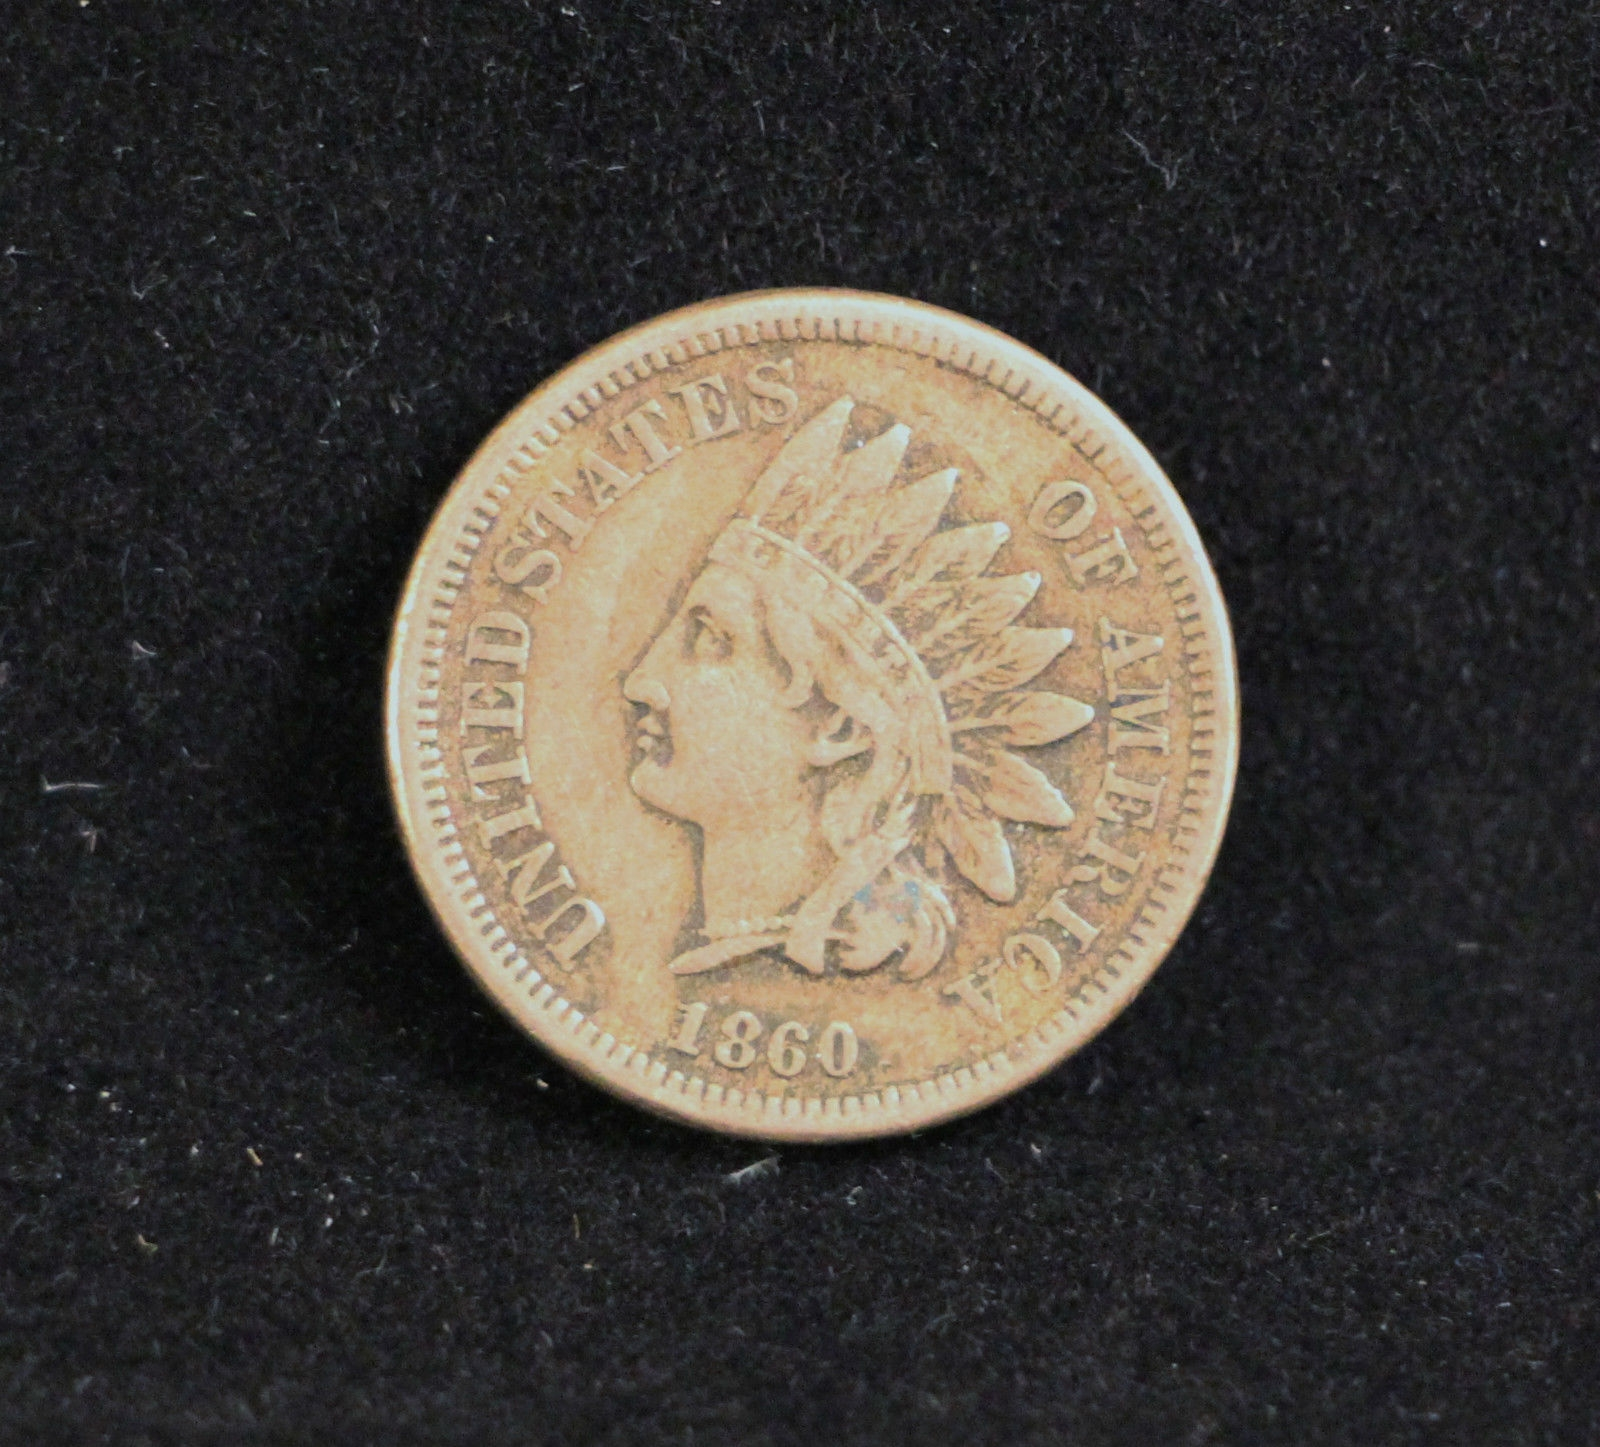 1860 INDIAN HEAD Penny One cent coin CIVIL WAR -NICE DETAIL! L@K FREE S&H